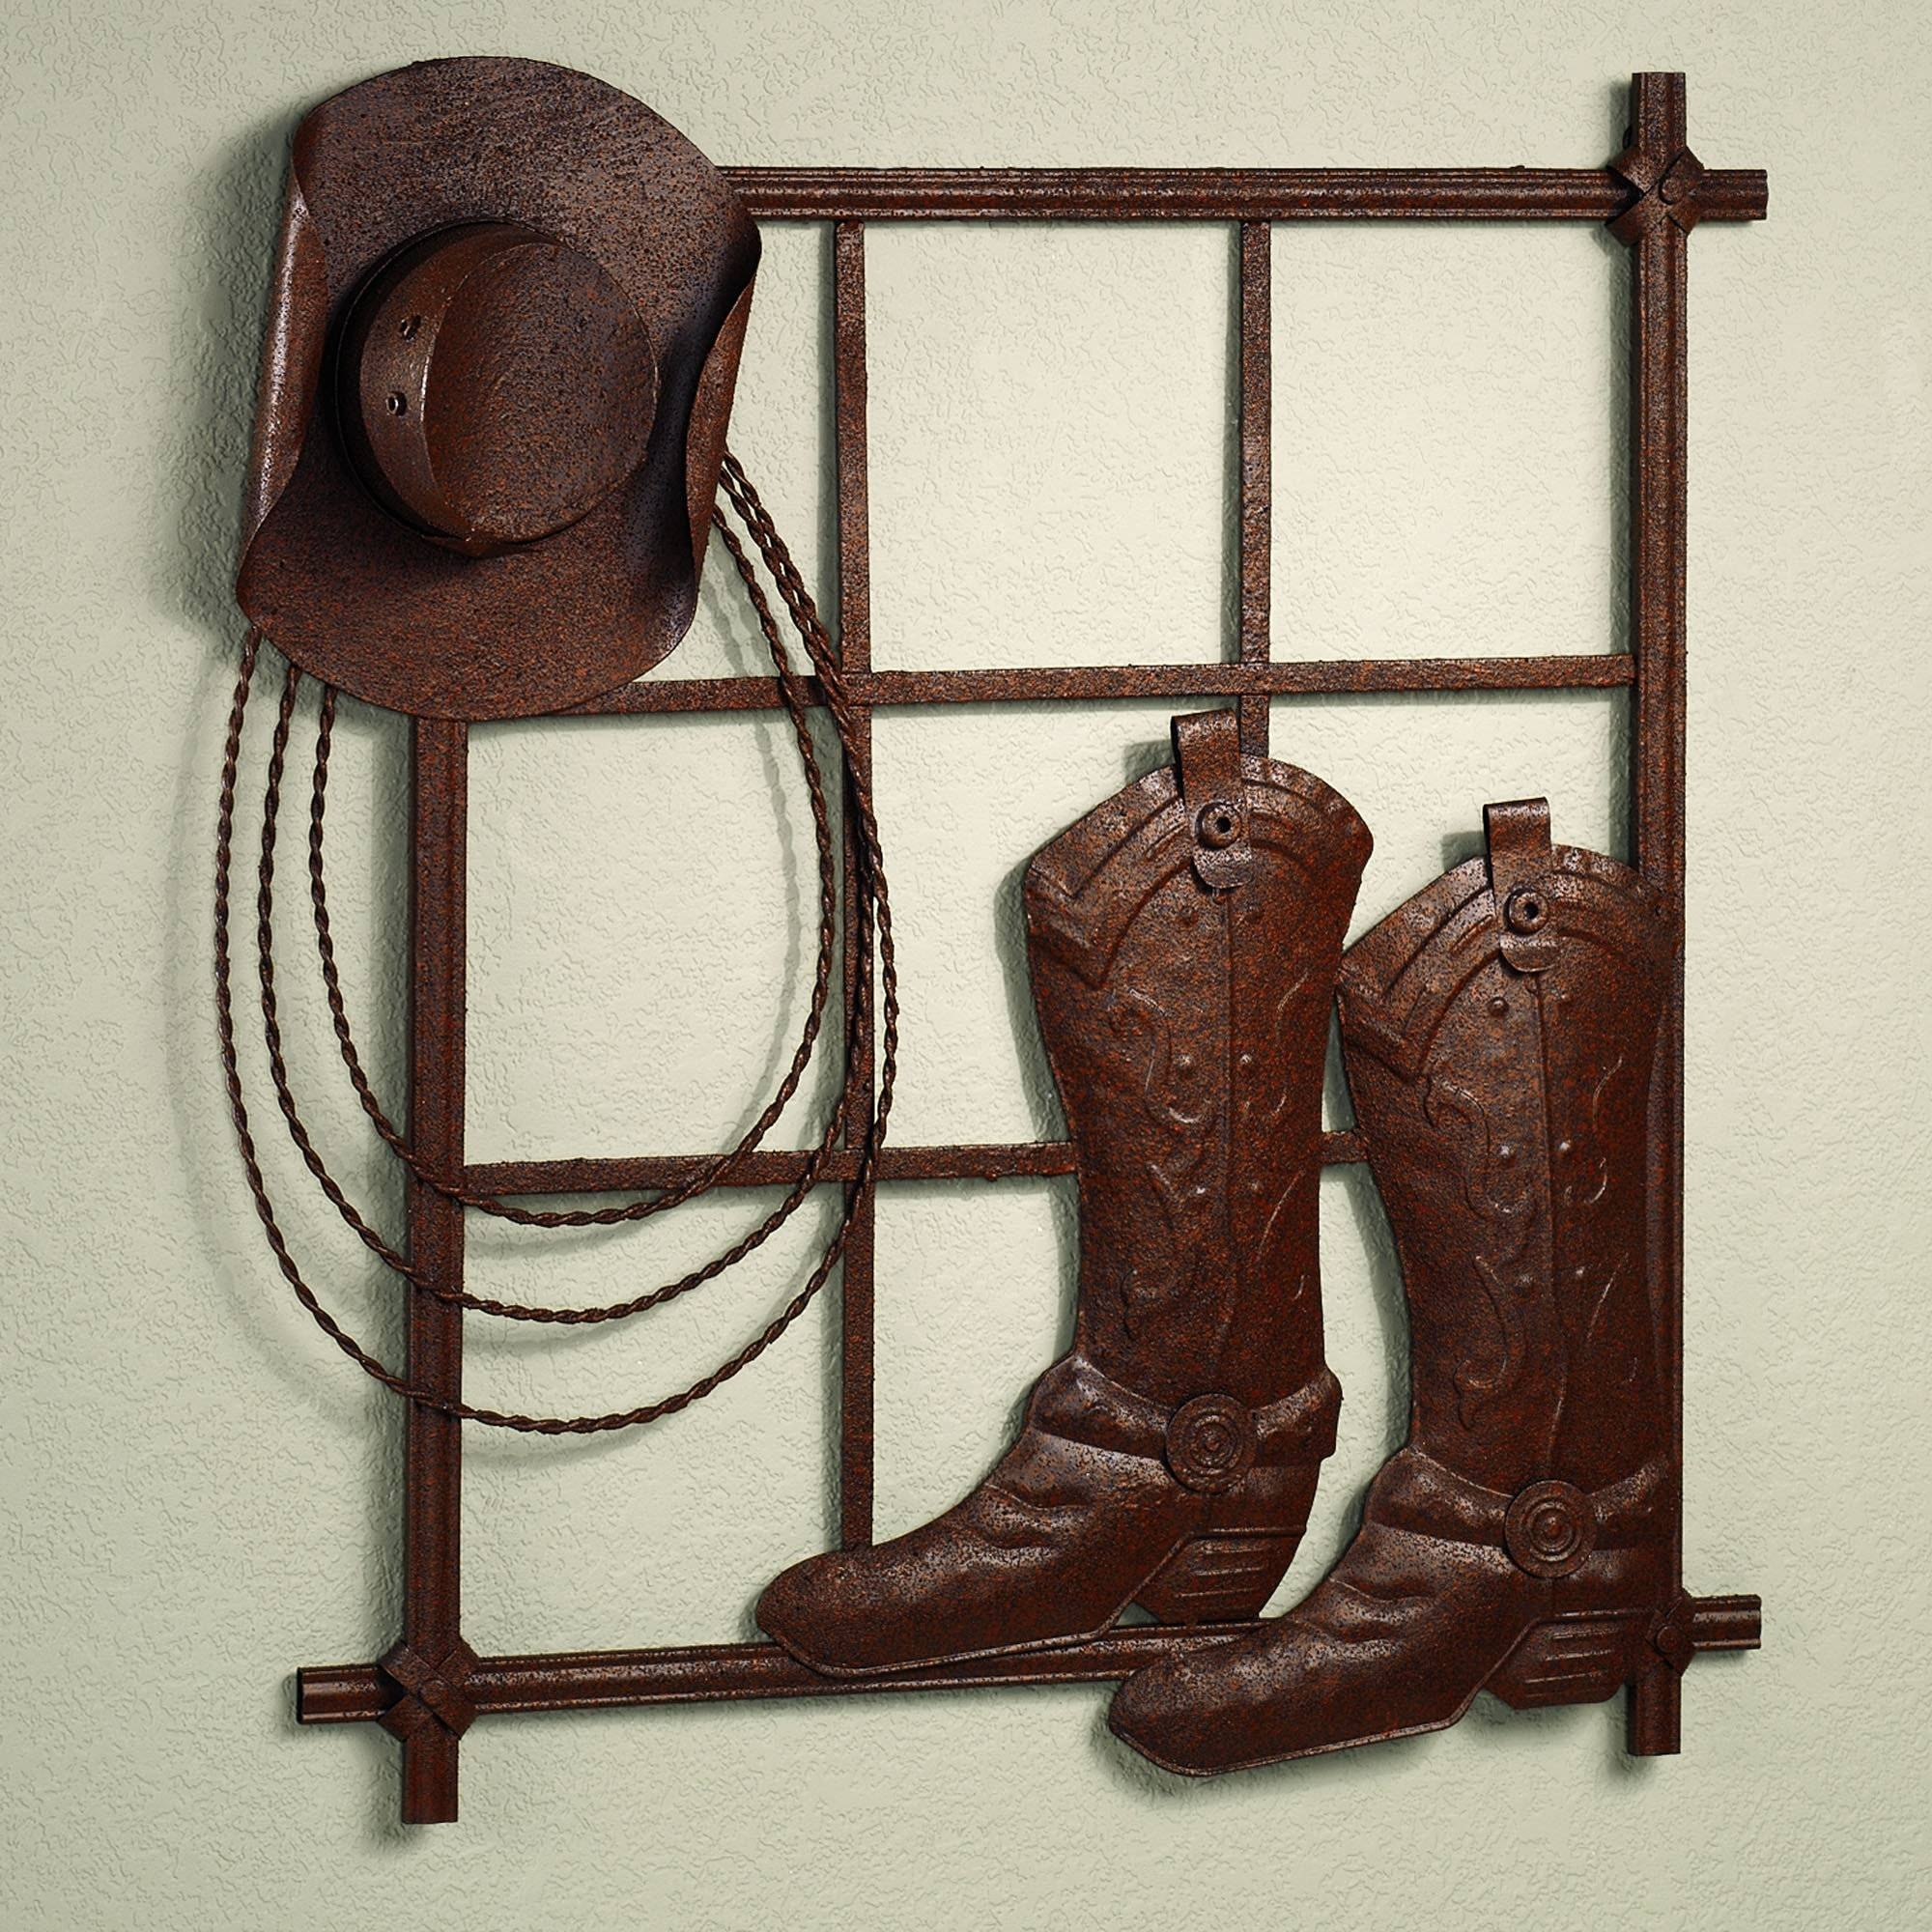 Home Design : Rustic Wood And Metal Wall Art Contemporary Compact In Most Current Country Metal Wall Art (View 16 of 30)